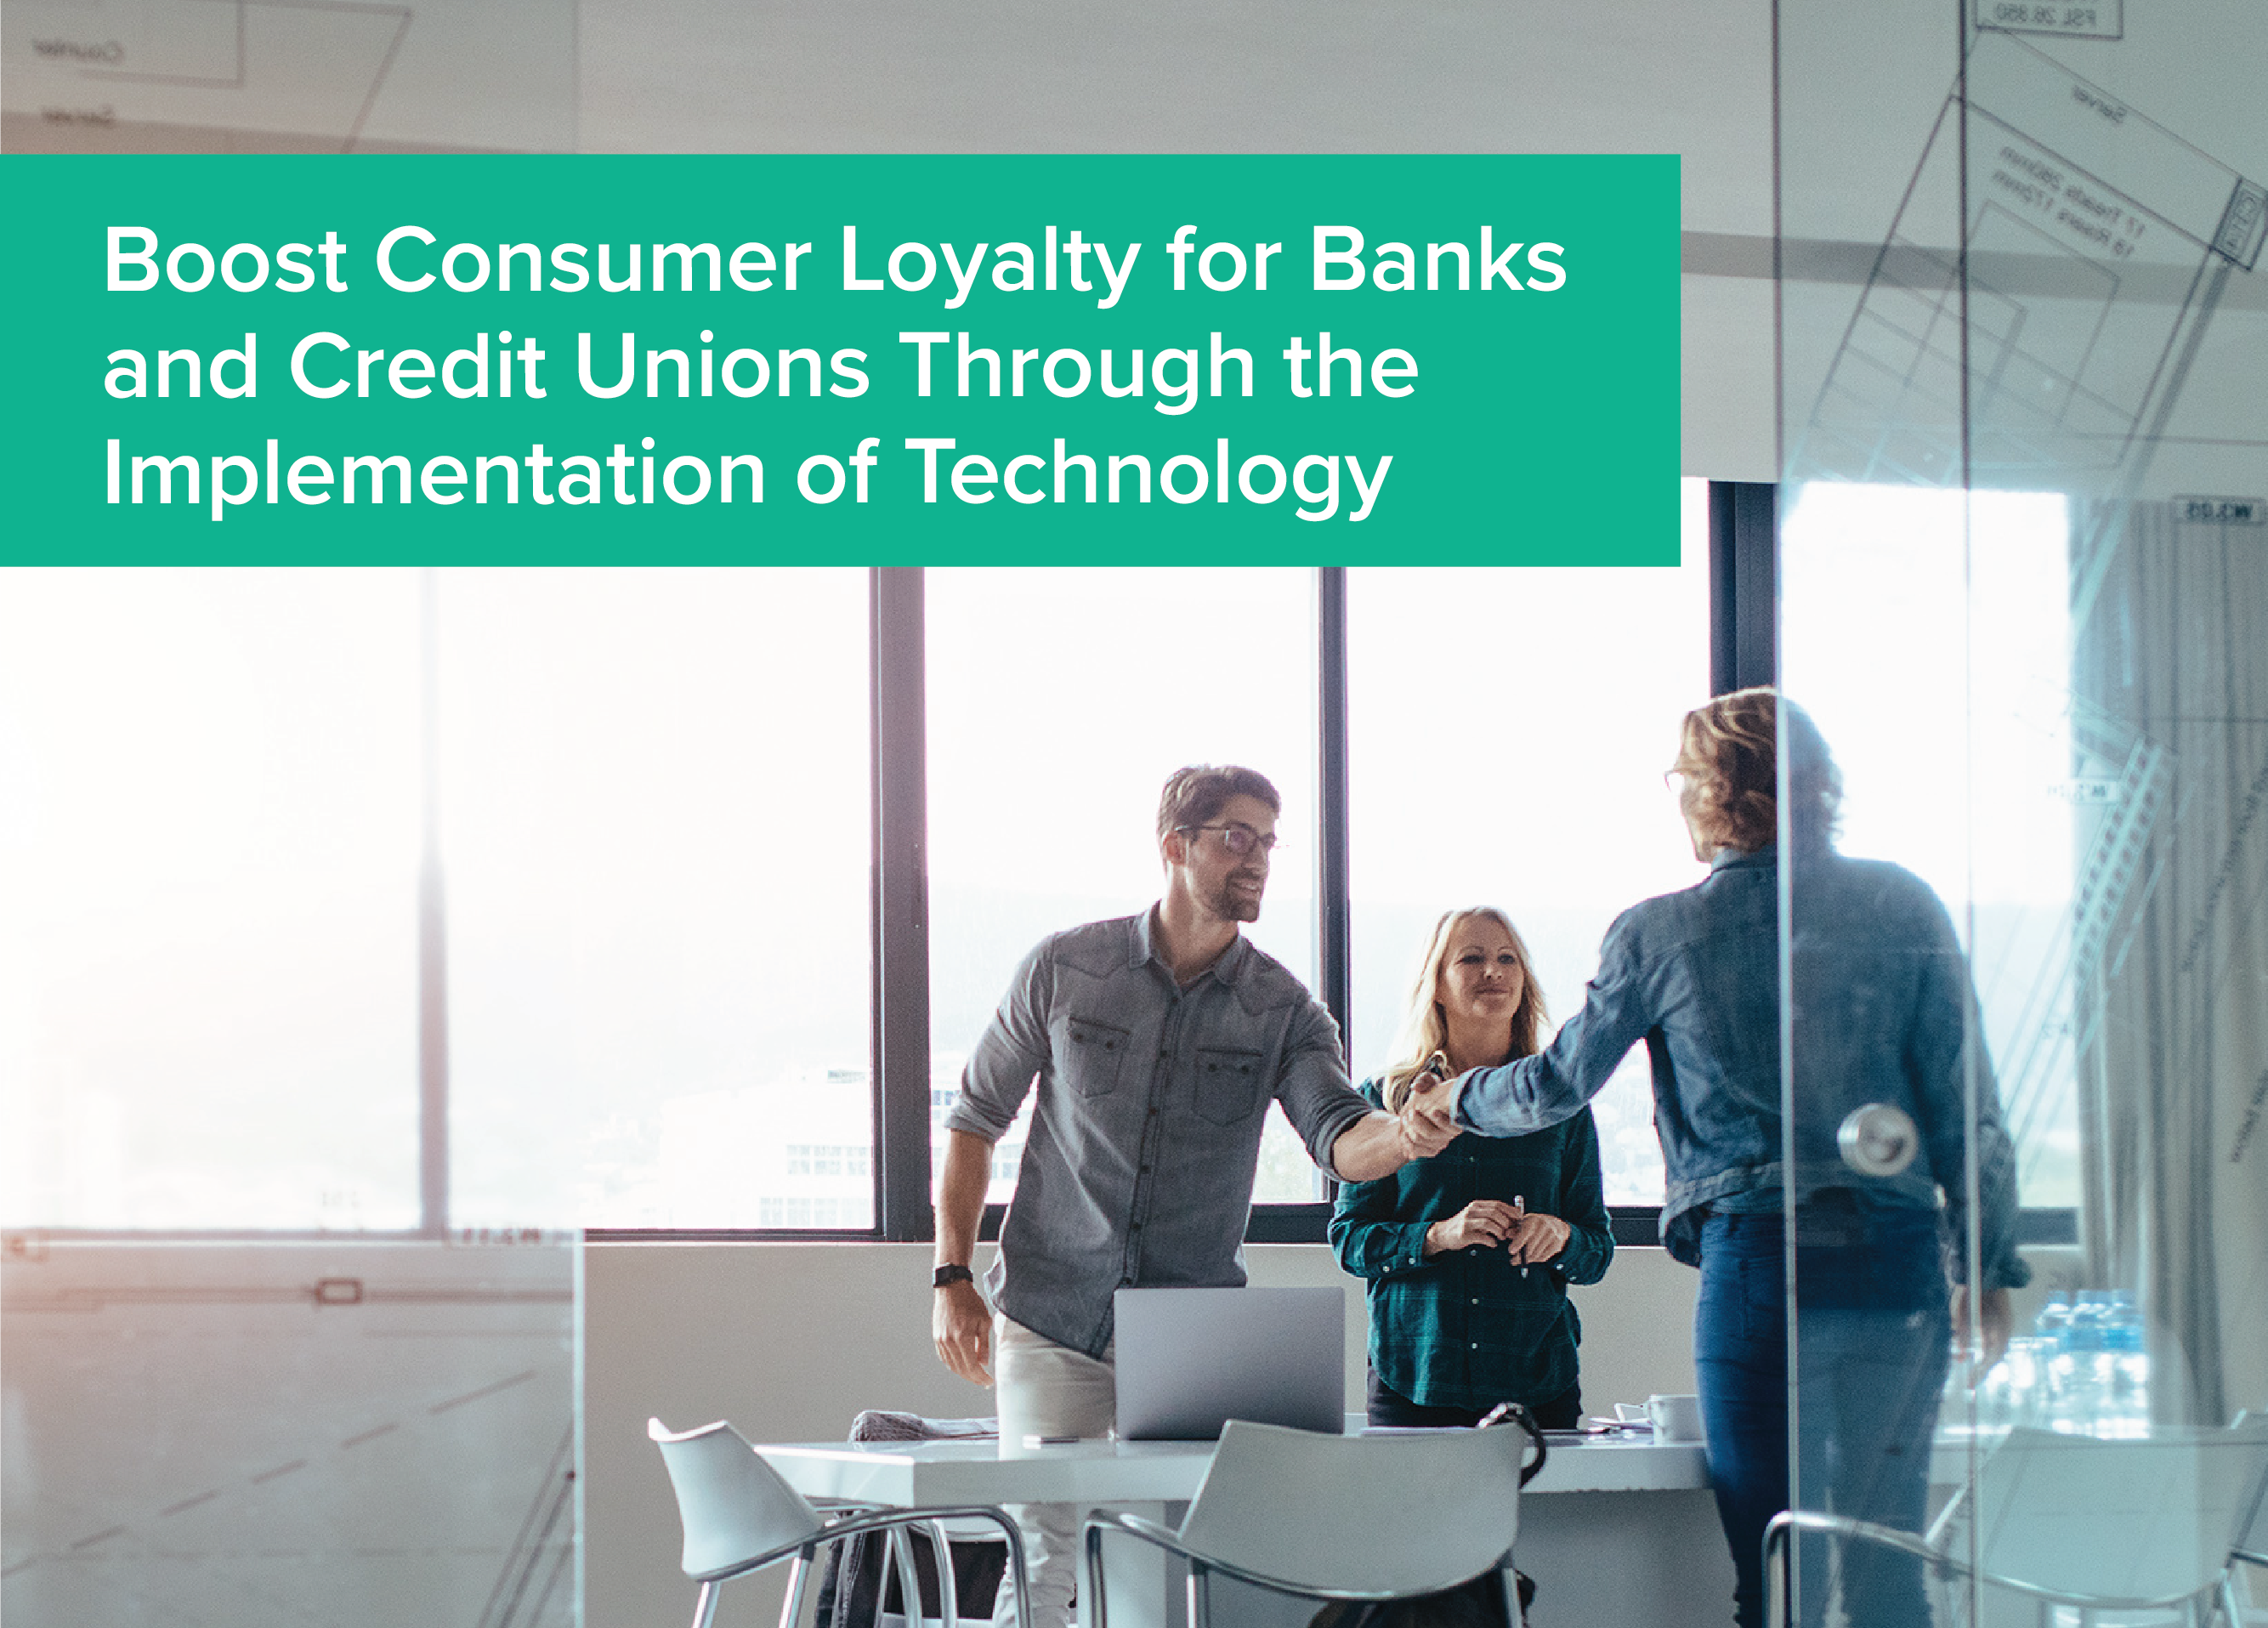 Boost Consumer Loyalty for Banks and Credit Unions Through the Implementation of Technology